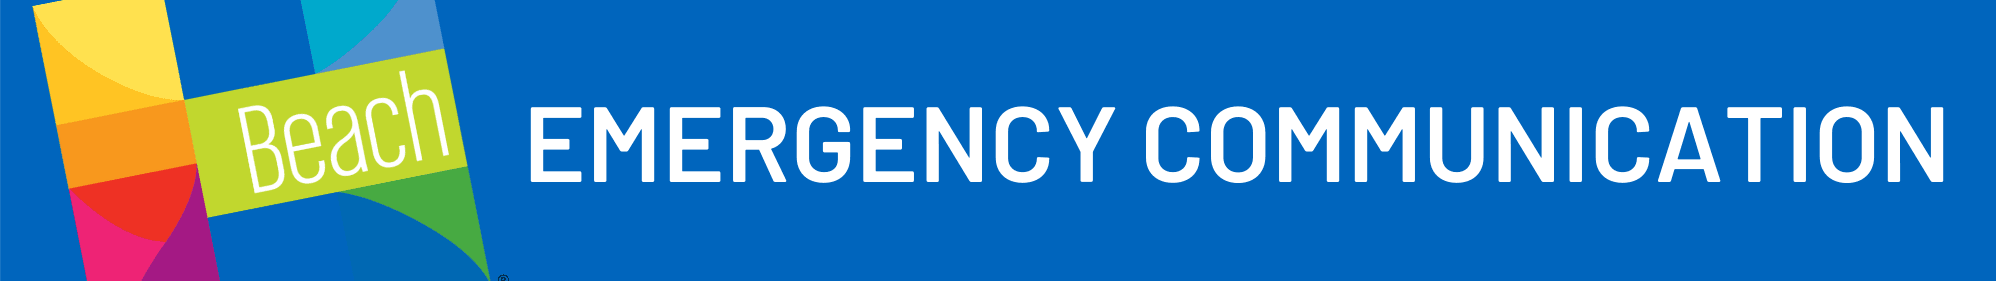 Emergency Communications Web Header